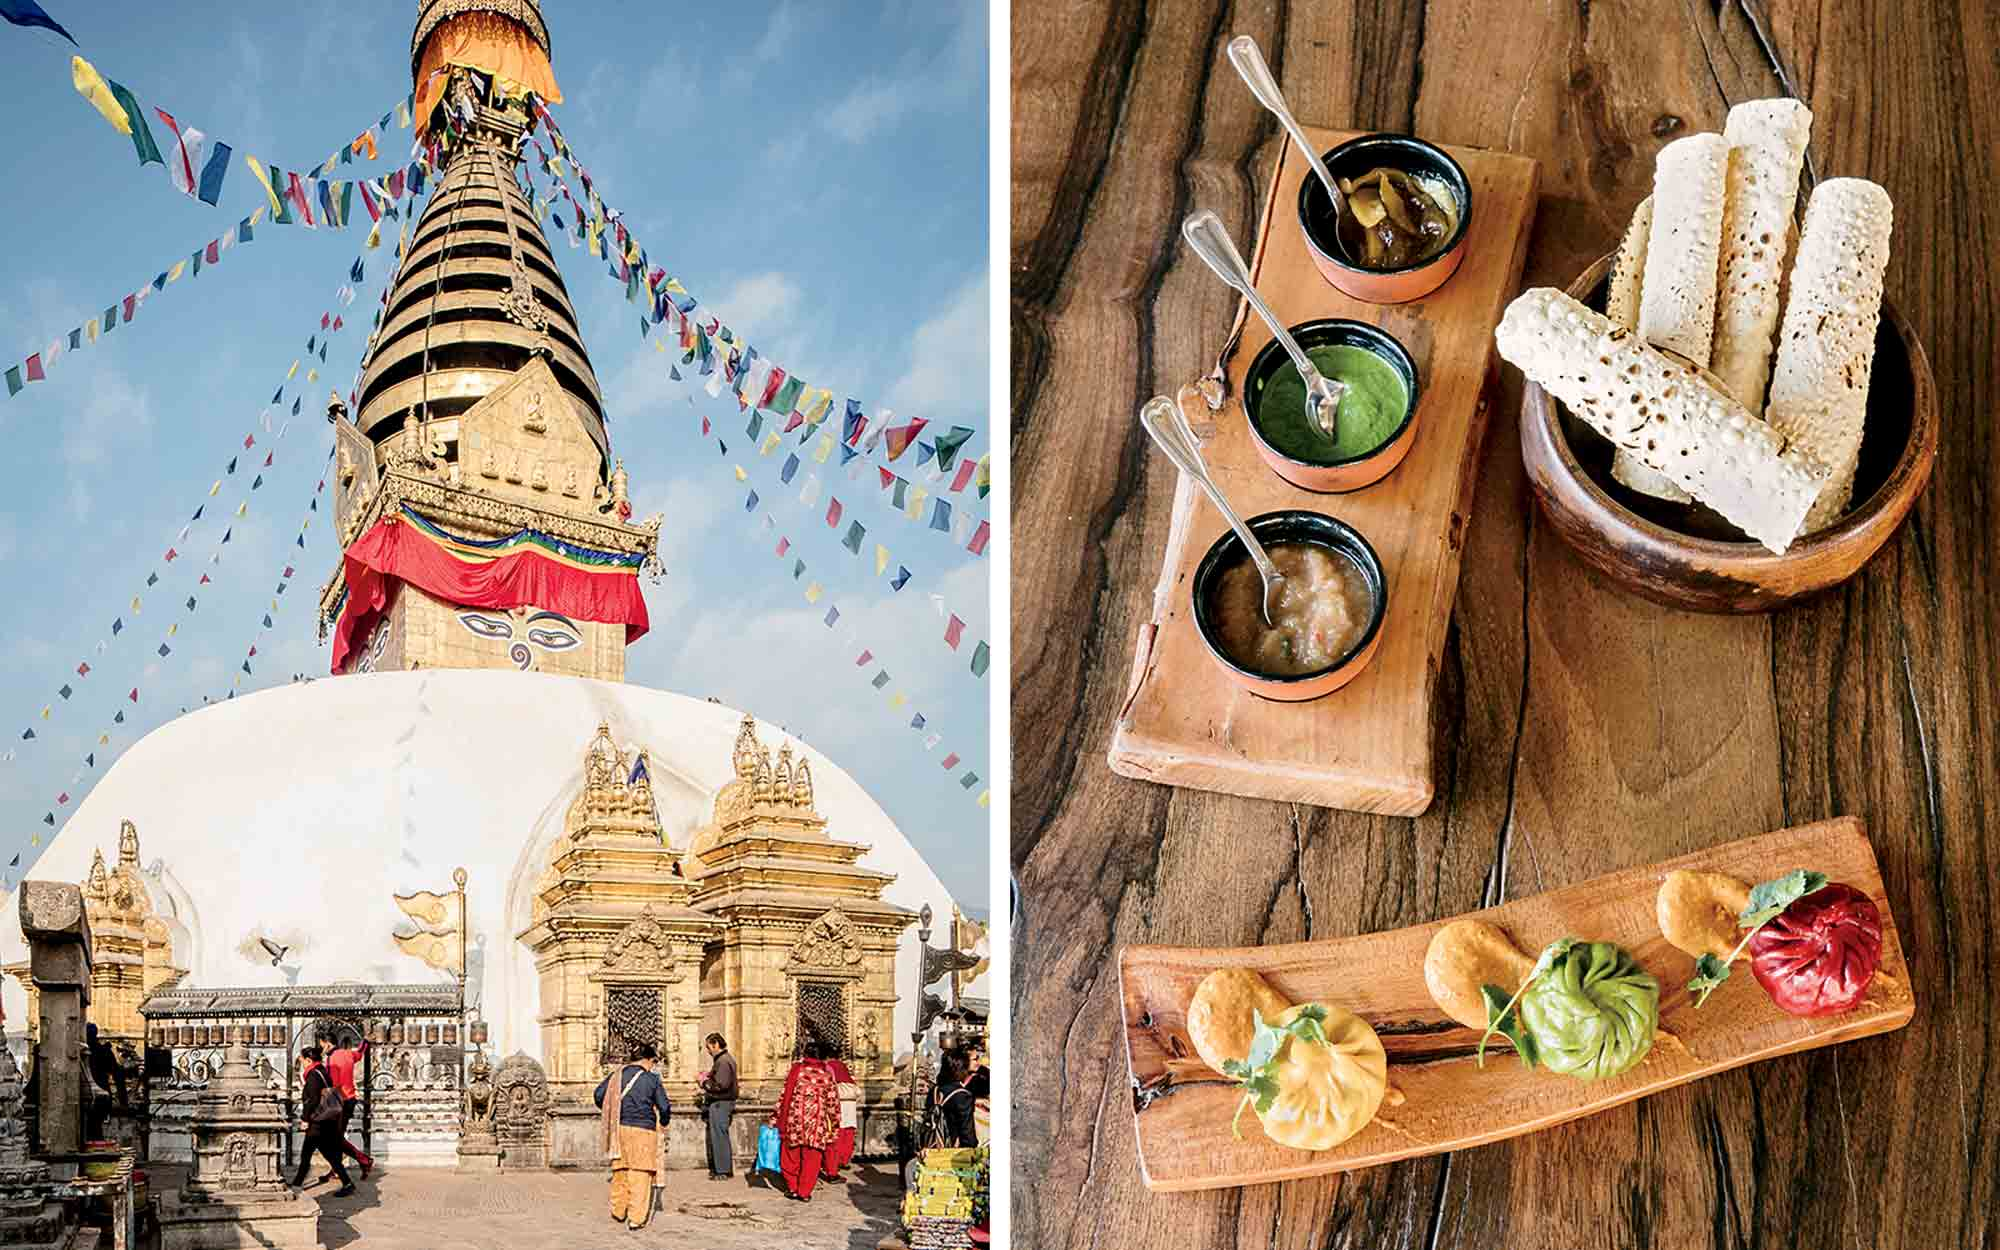 Nepal Temples and Food